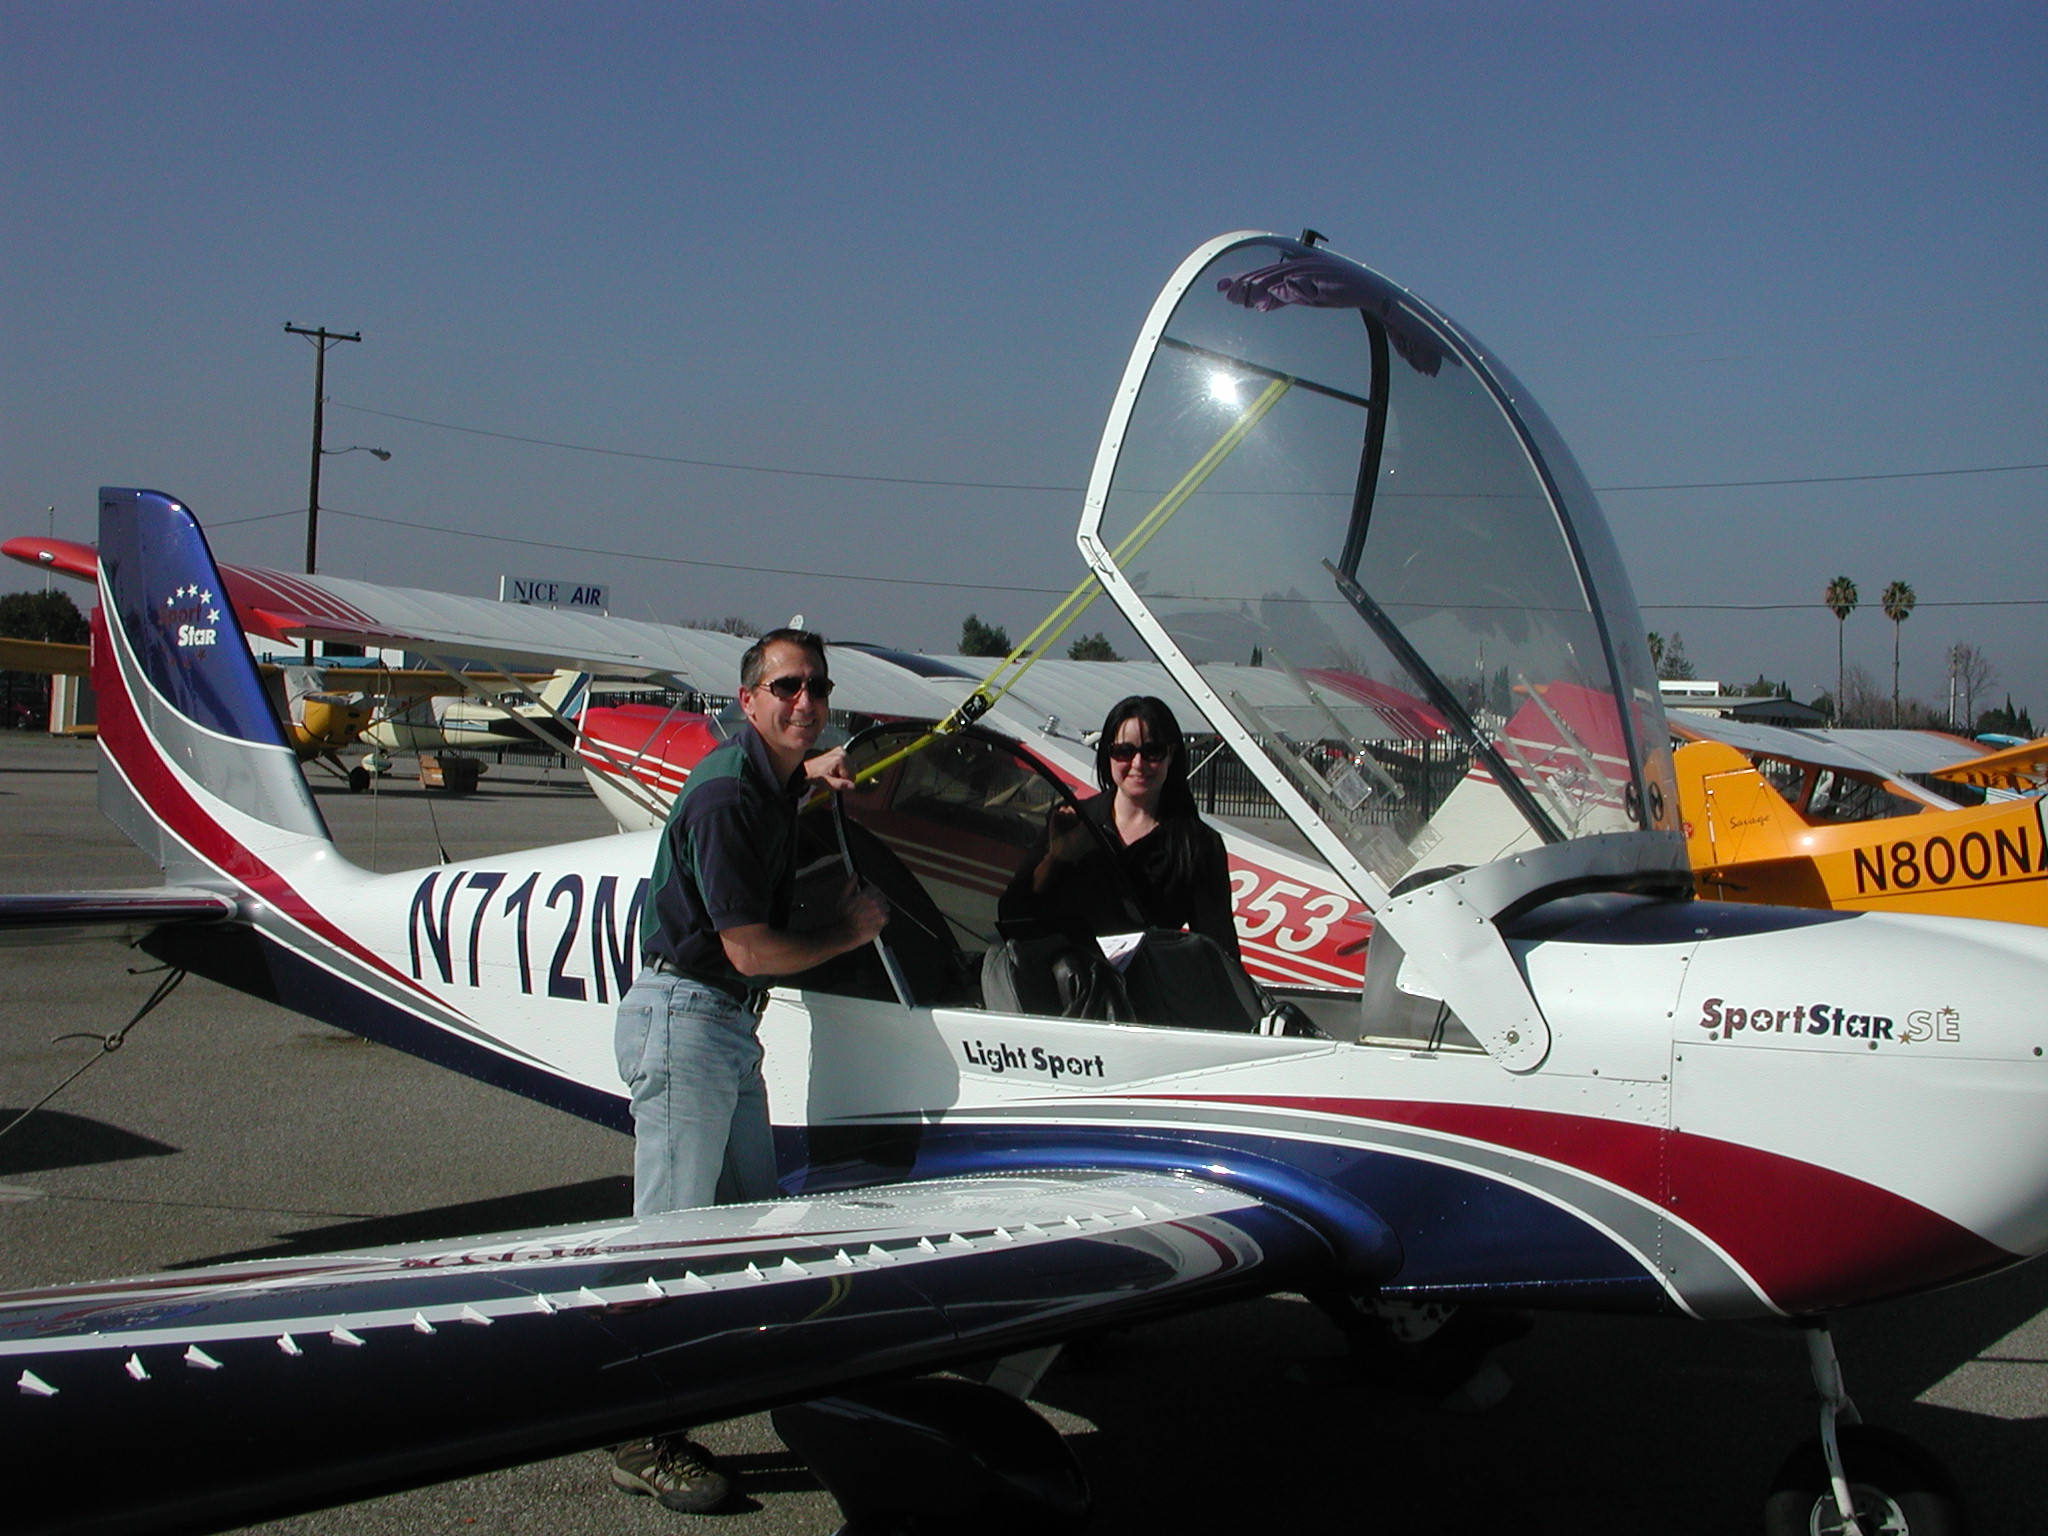 Anny Aubin started her sport pilot training at AeroDynamic Aviation at RHV Airport in San Jose, CA.